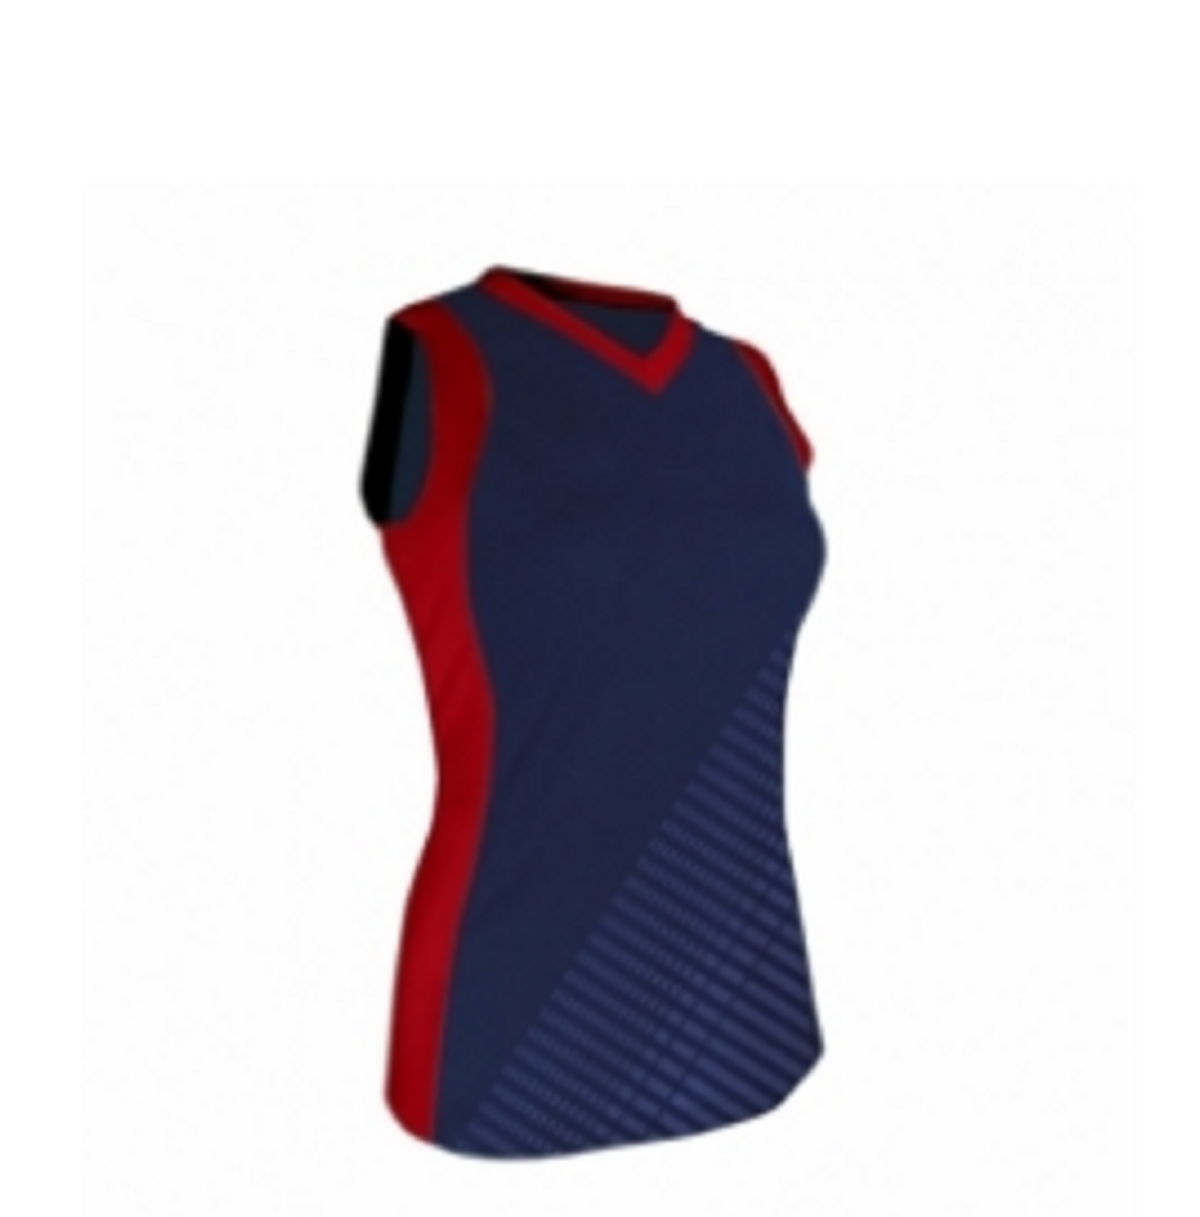 Volleyball Uniforms Shirt Blue & Red Model No TSI­5804